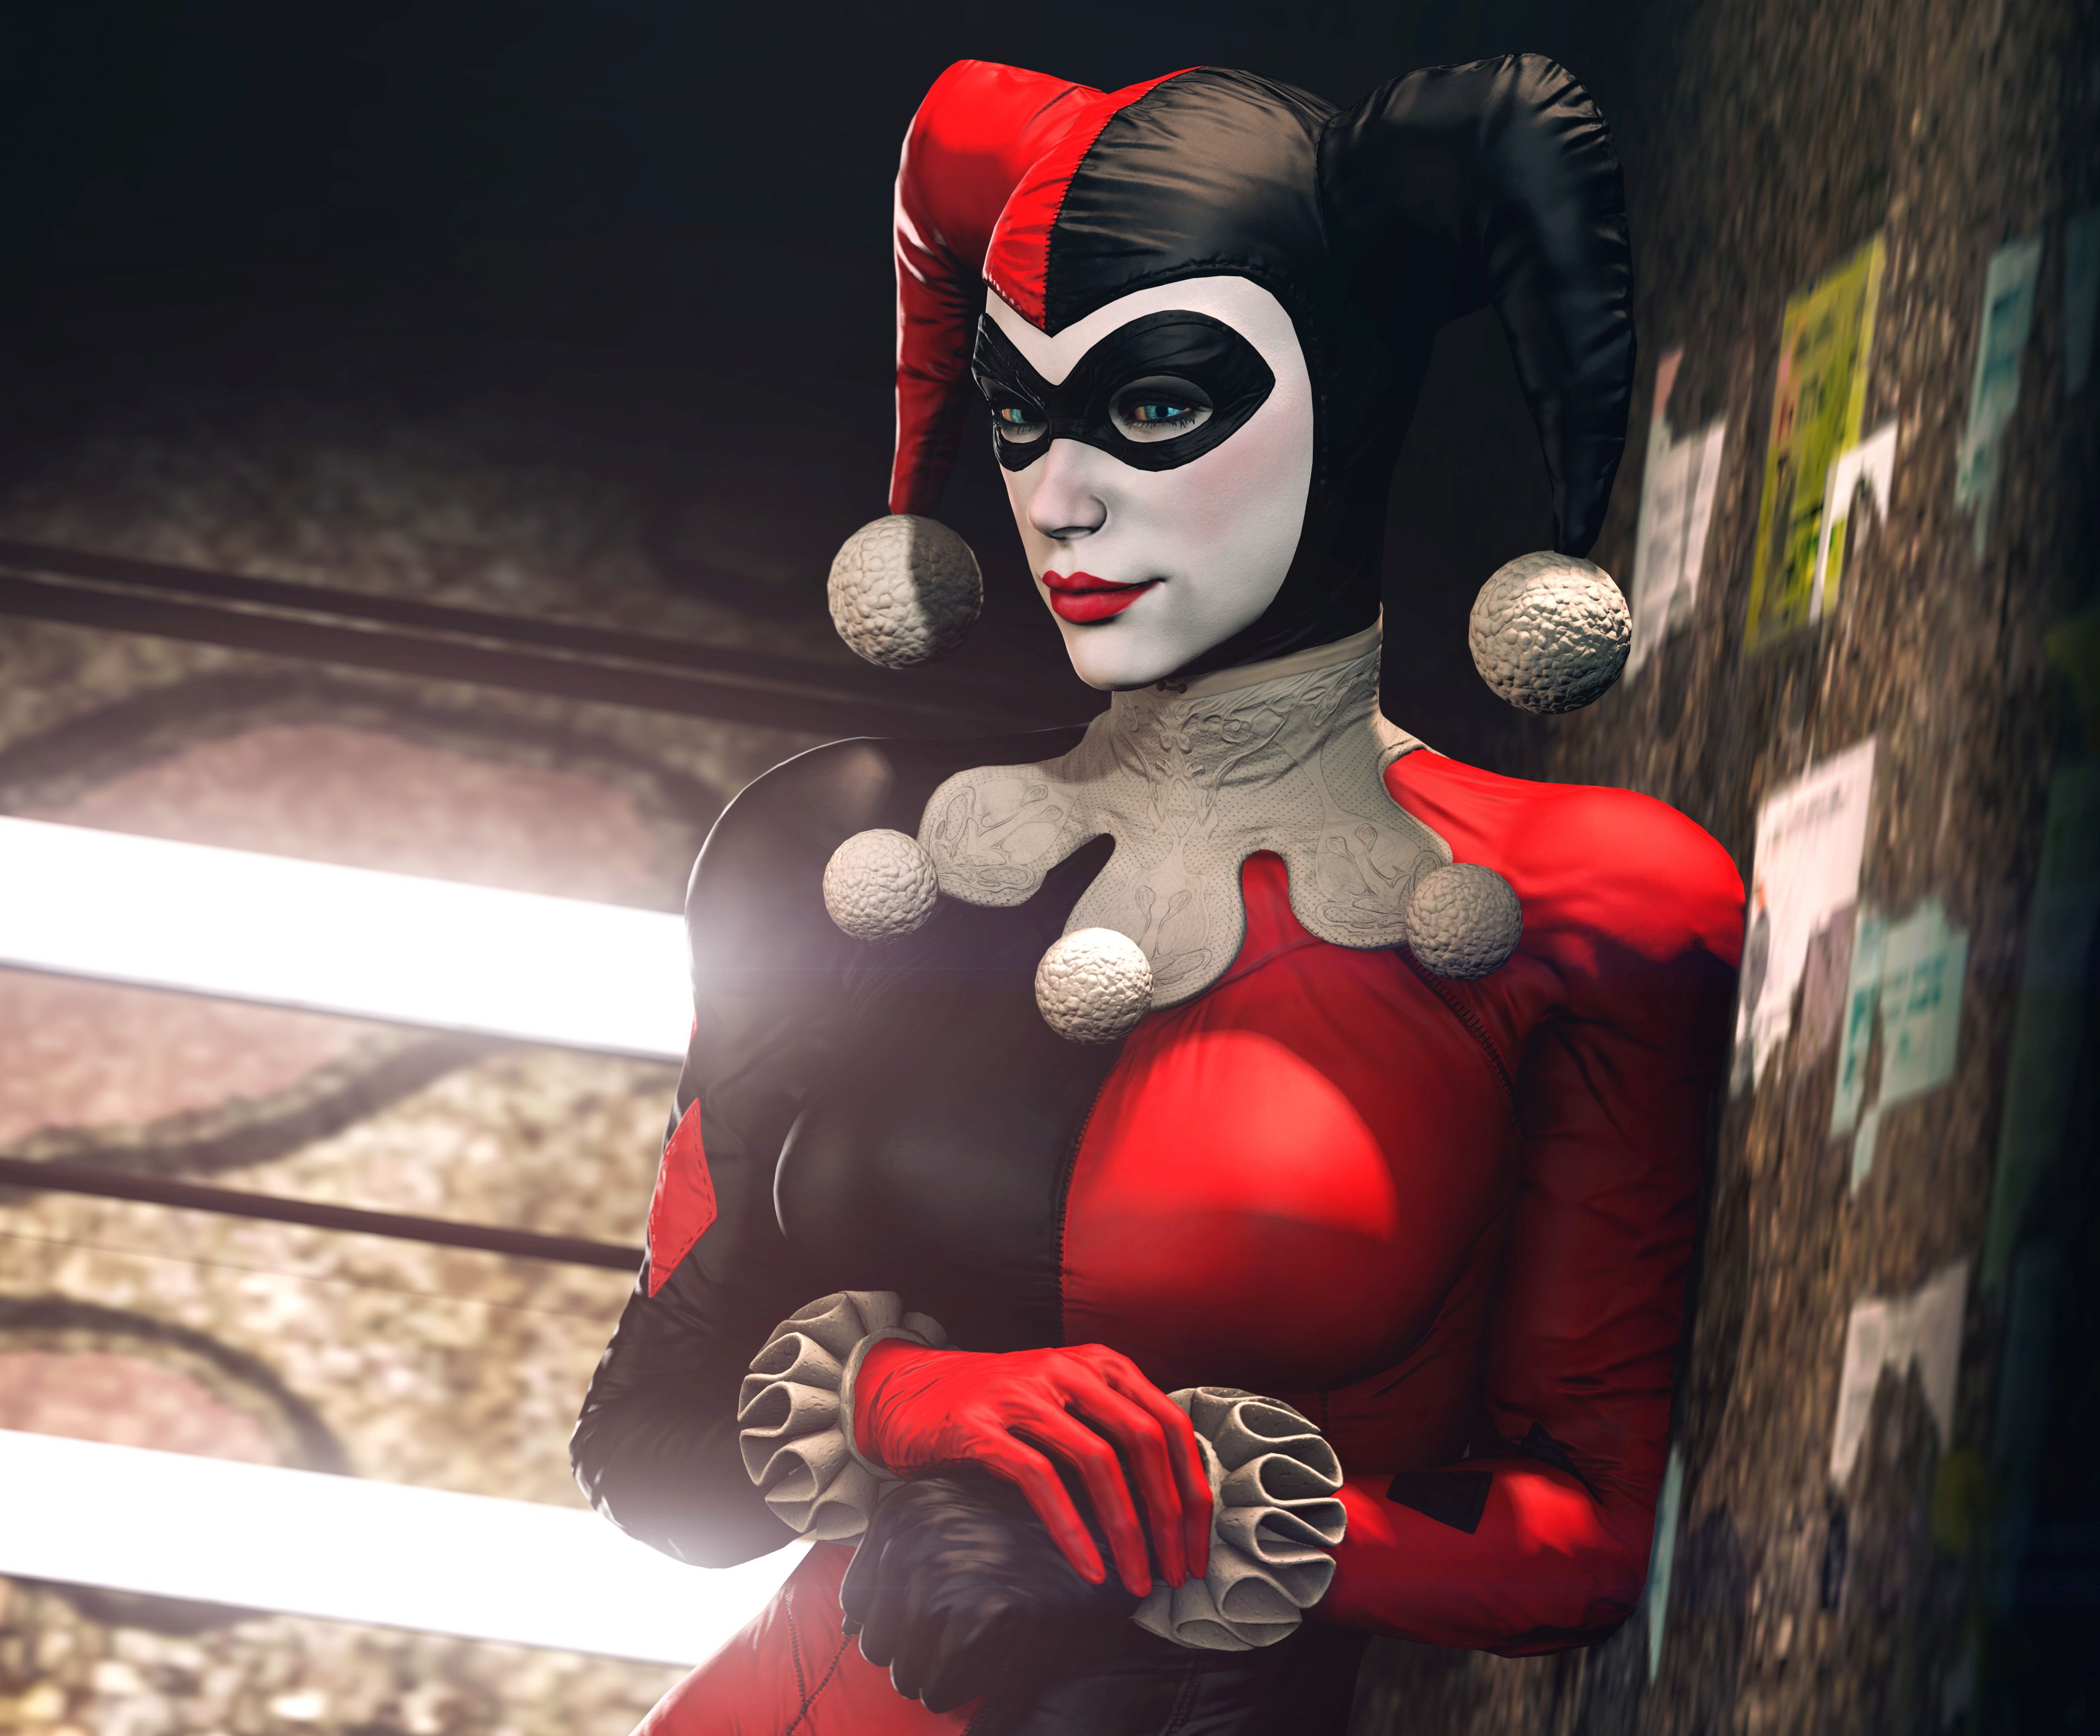 Harley quinn batman arkham night hd games 4k wallpapers - Harley quinn hd wallpapers for android ...